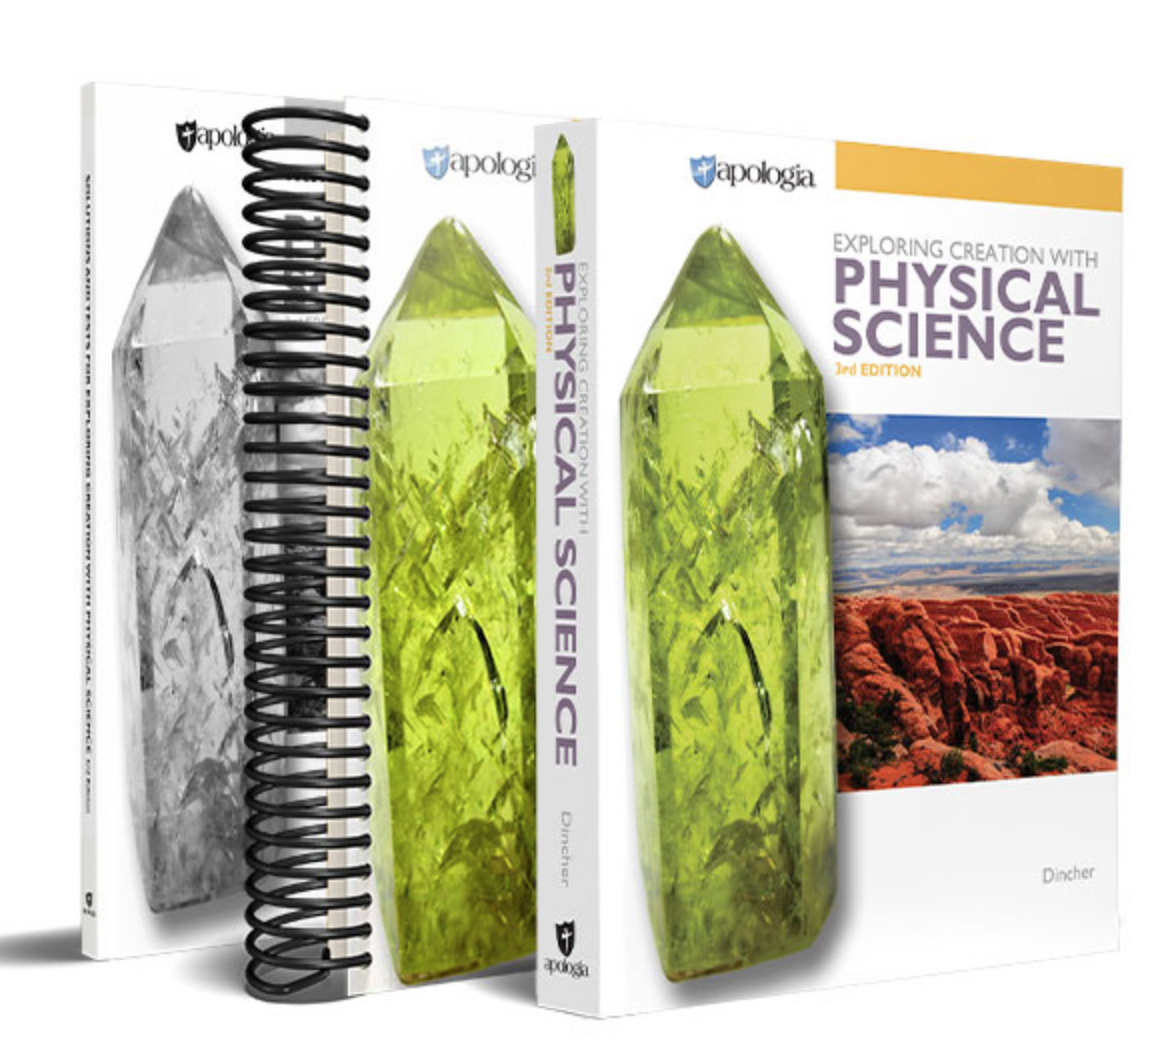 If you are looking for a rigorous homeschool science curriculum from a Christian worldview that doesn't take a lot of preparation and can be done independently, Apologia is your answer!